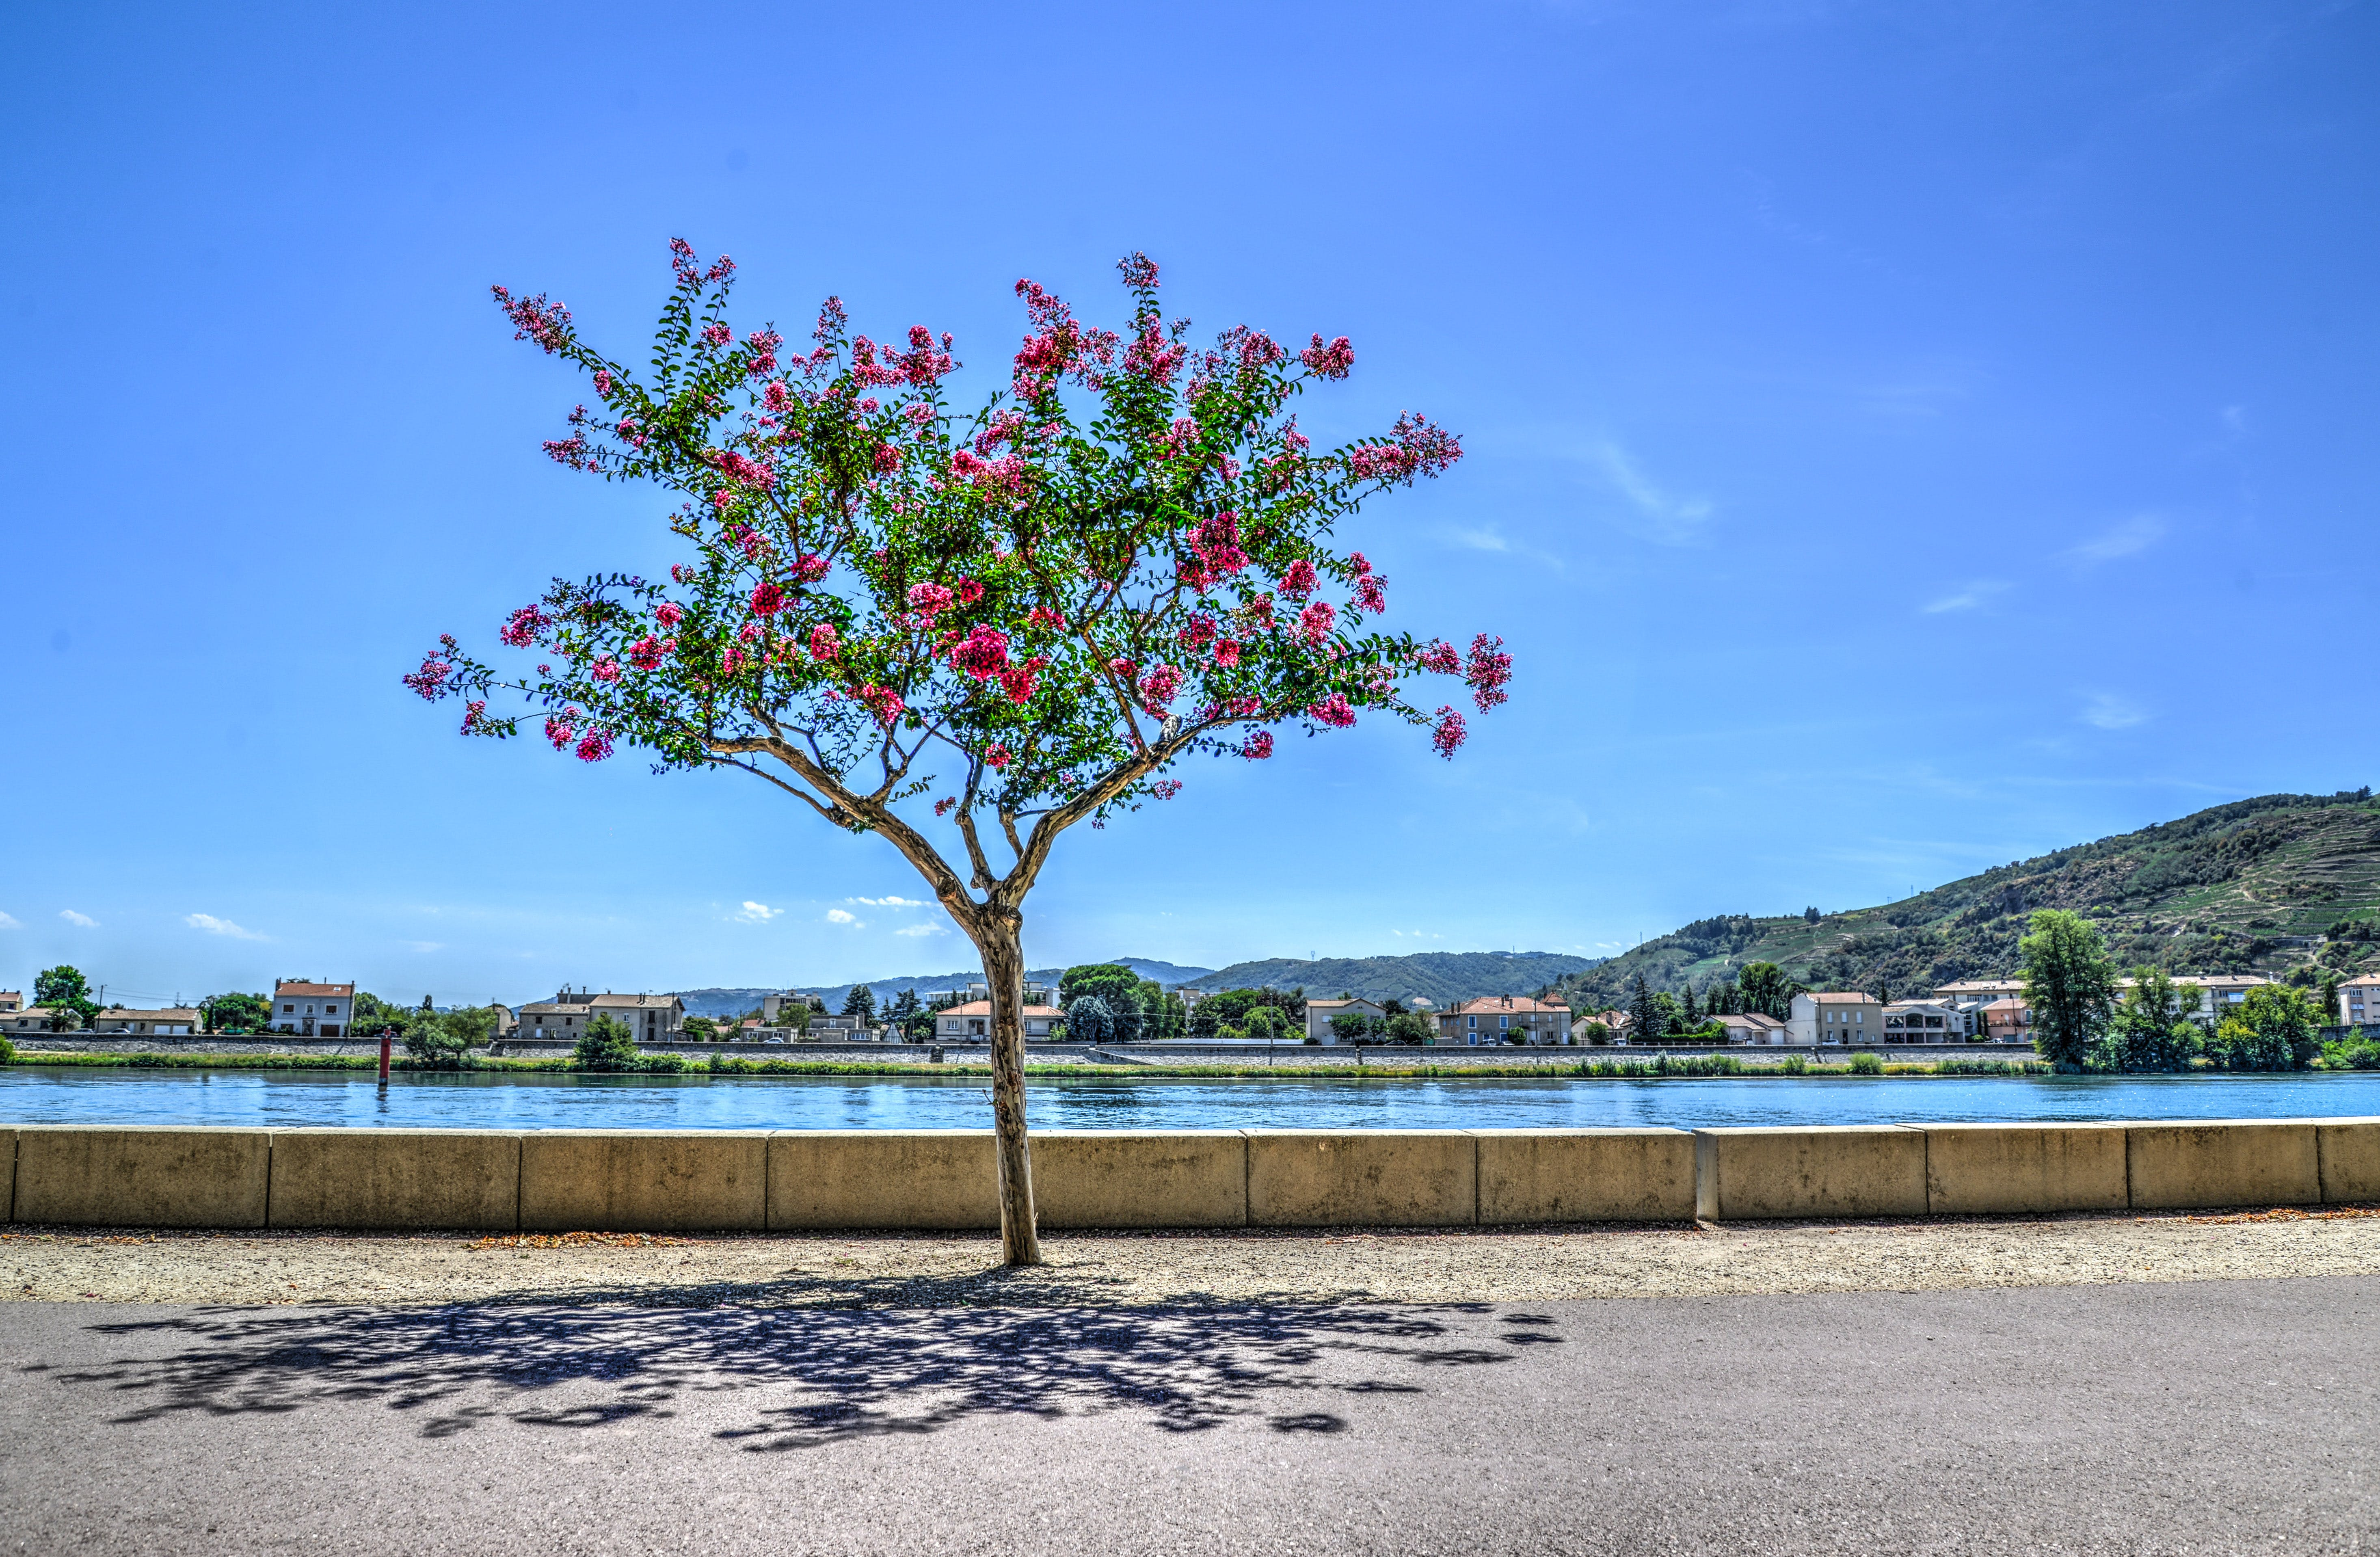 Person Showing Red Flower Tree